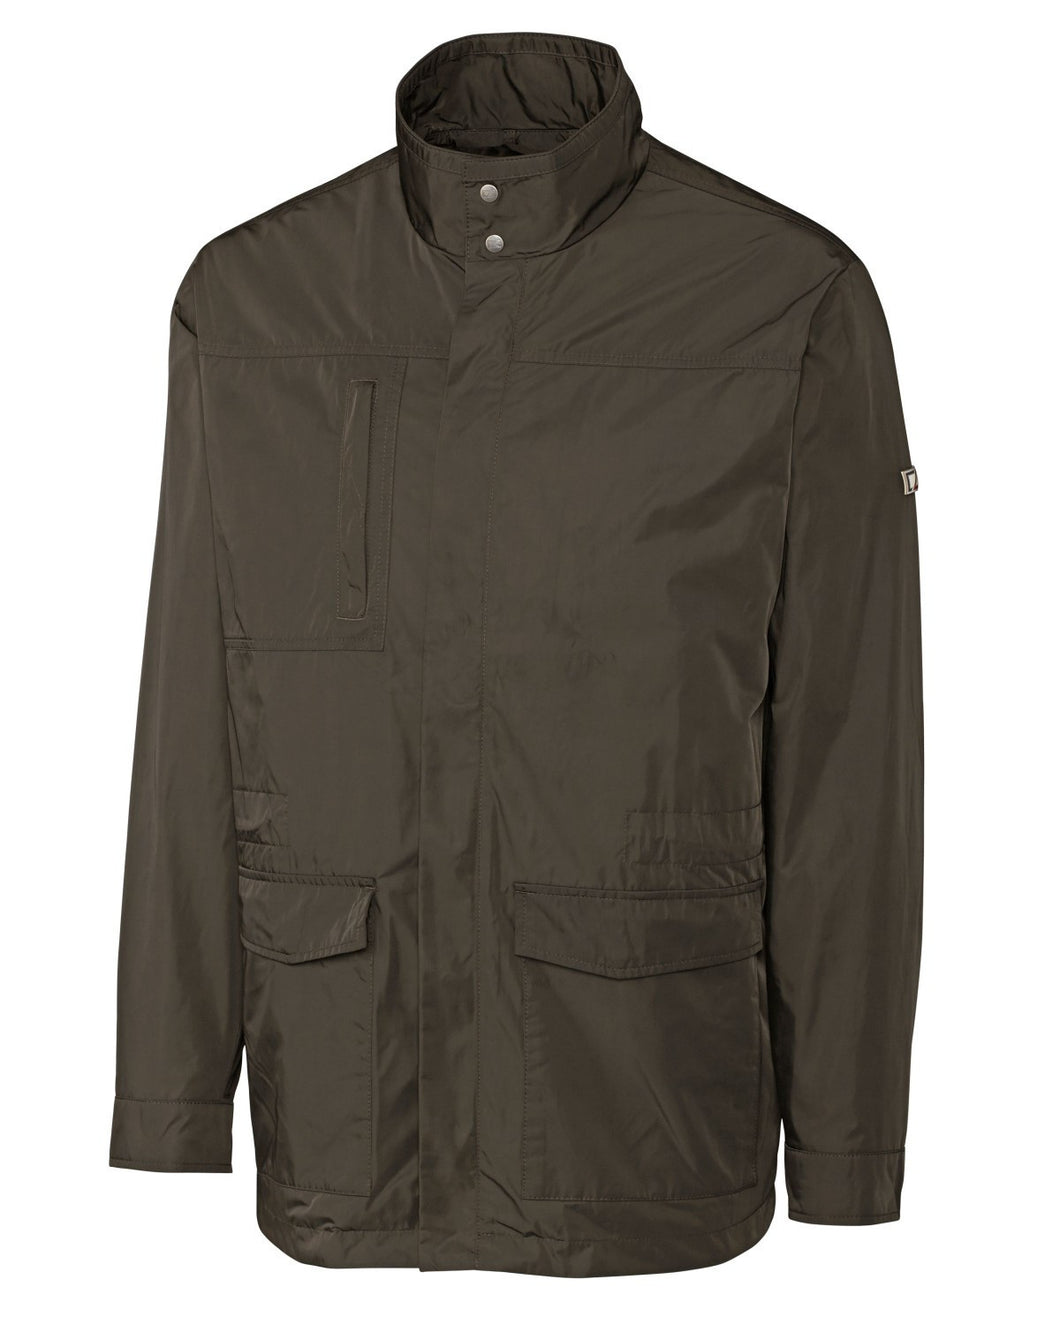 Cutter & Buck Men's CB WeatherTec Birch Bay Field Jacket